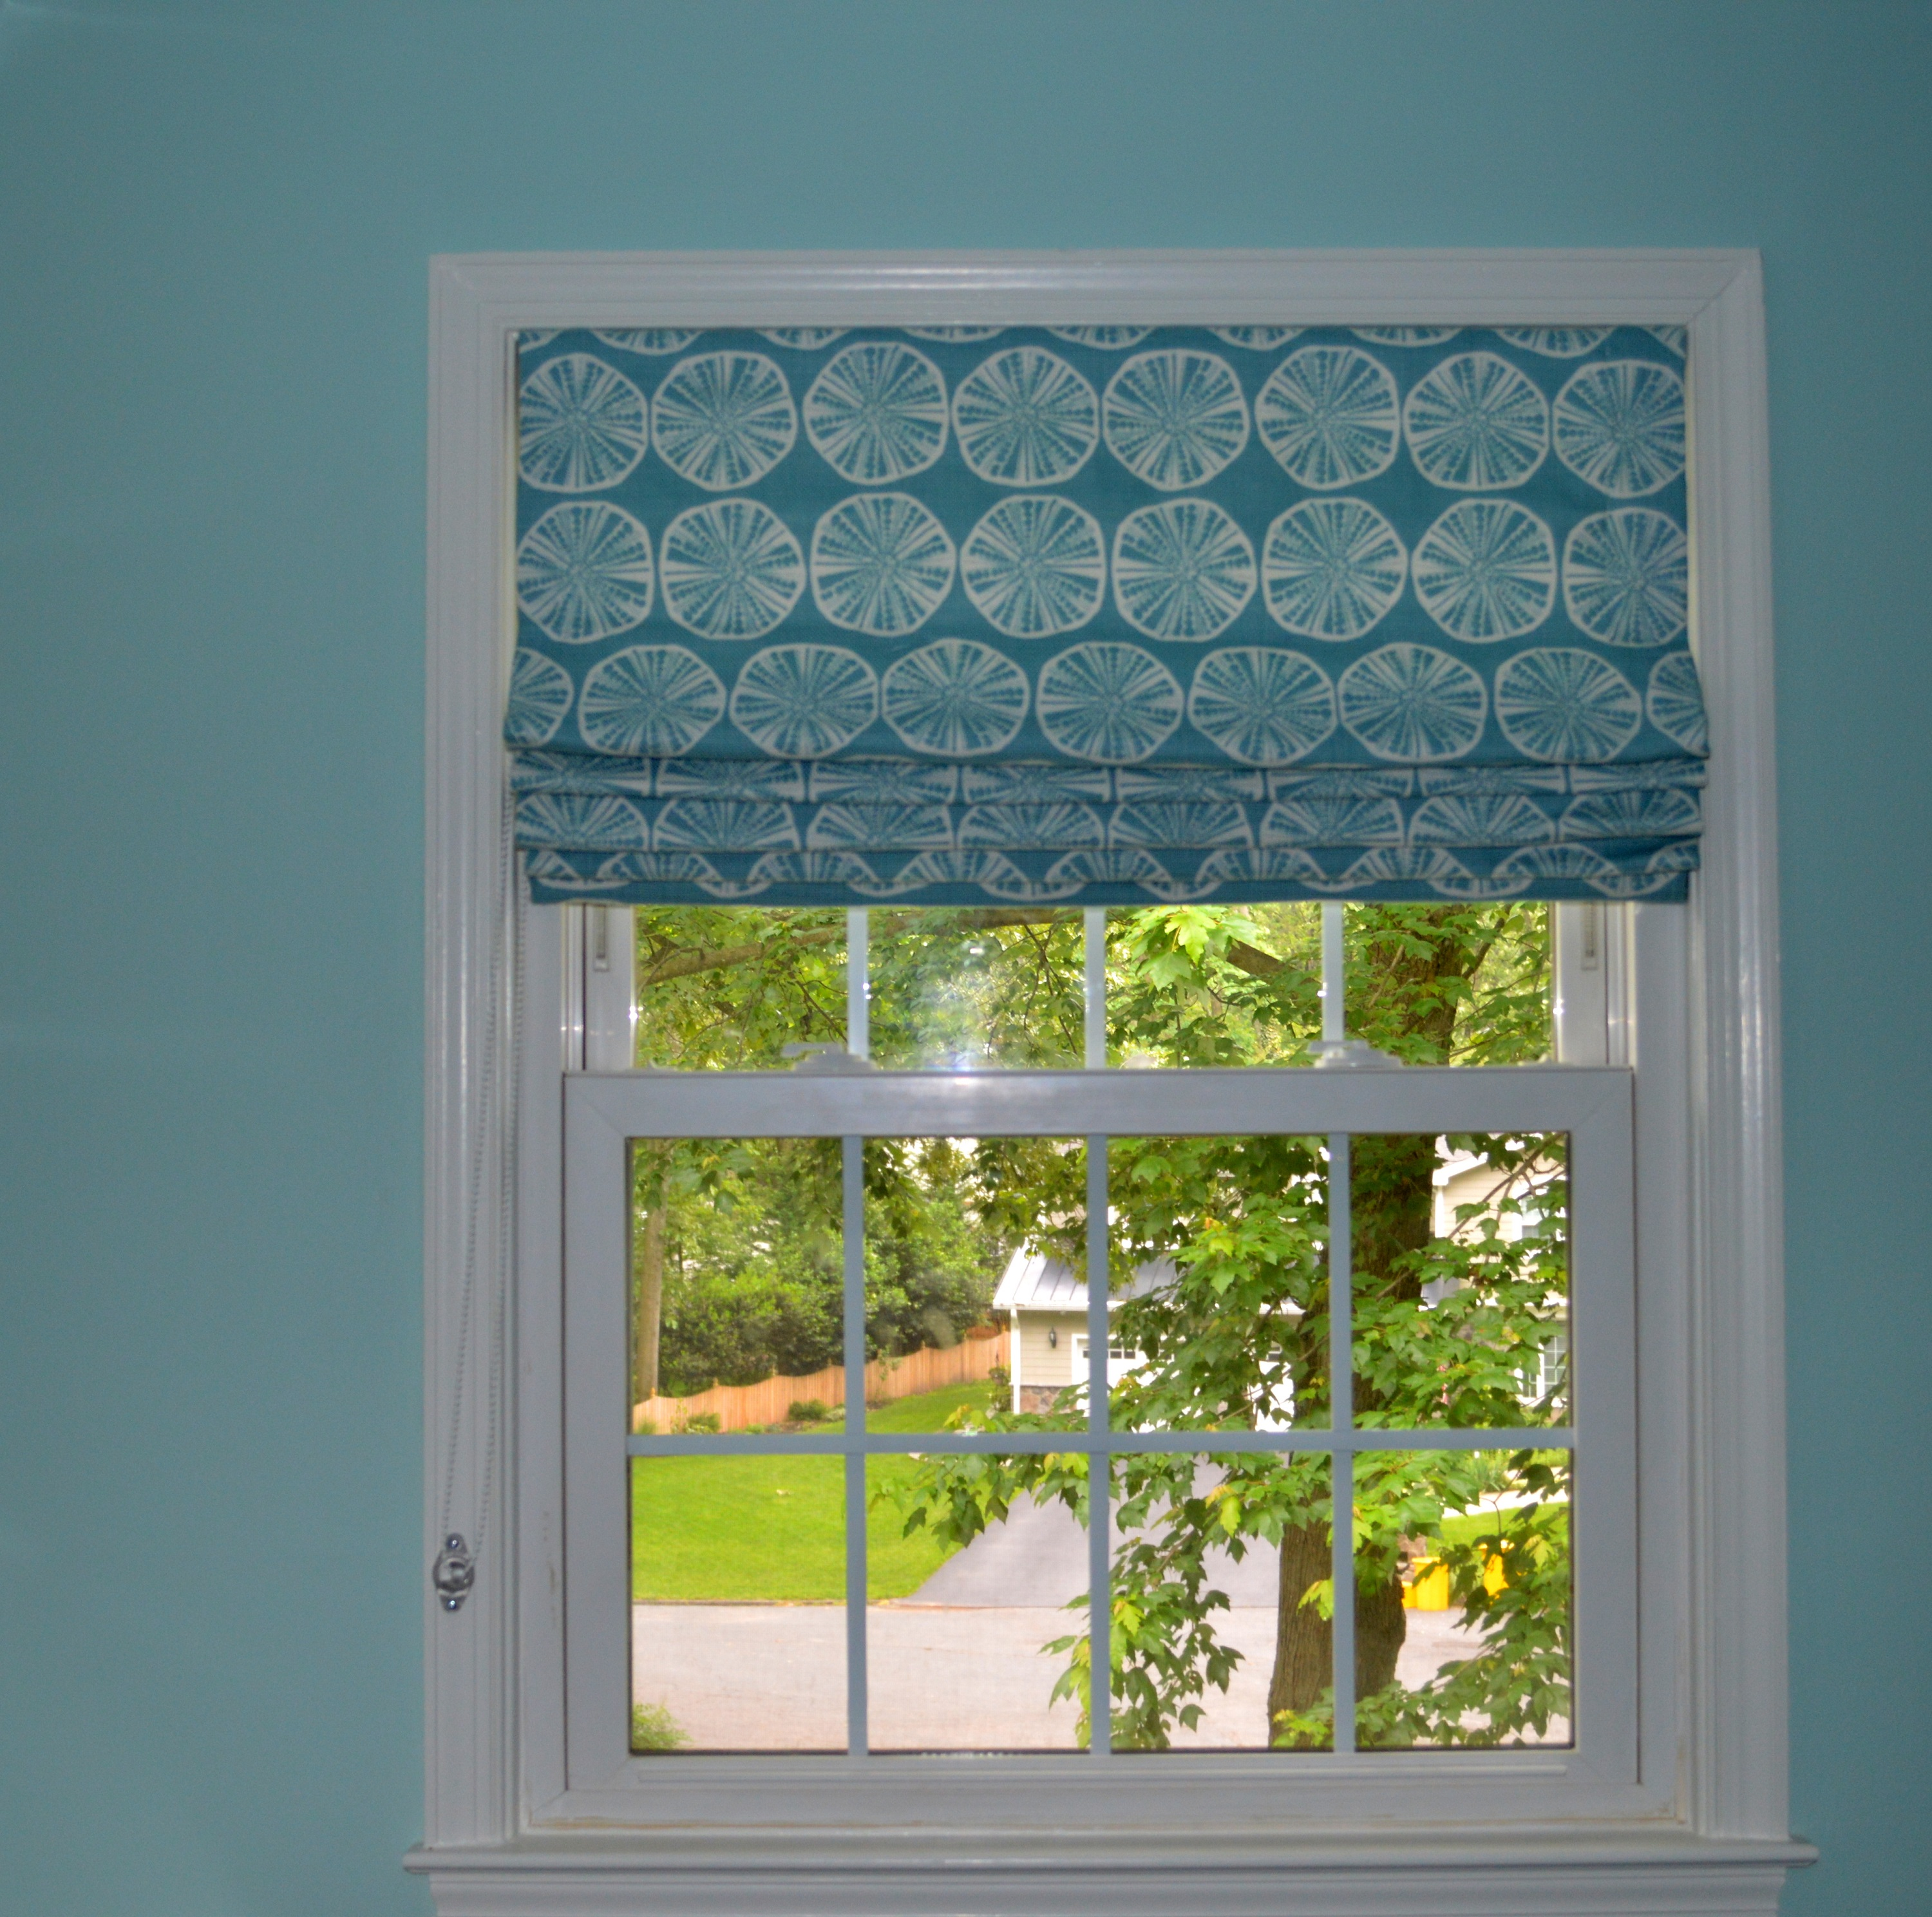 plantation roller valance elegant luxury home window roman blind treatments shade depot levolor shades tar shutters interior openaccessphd blinds com lowes of